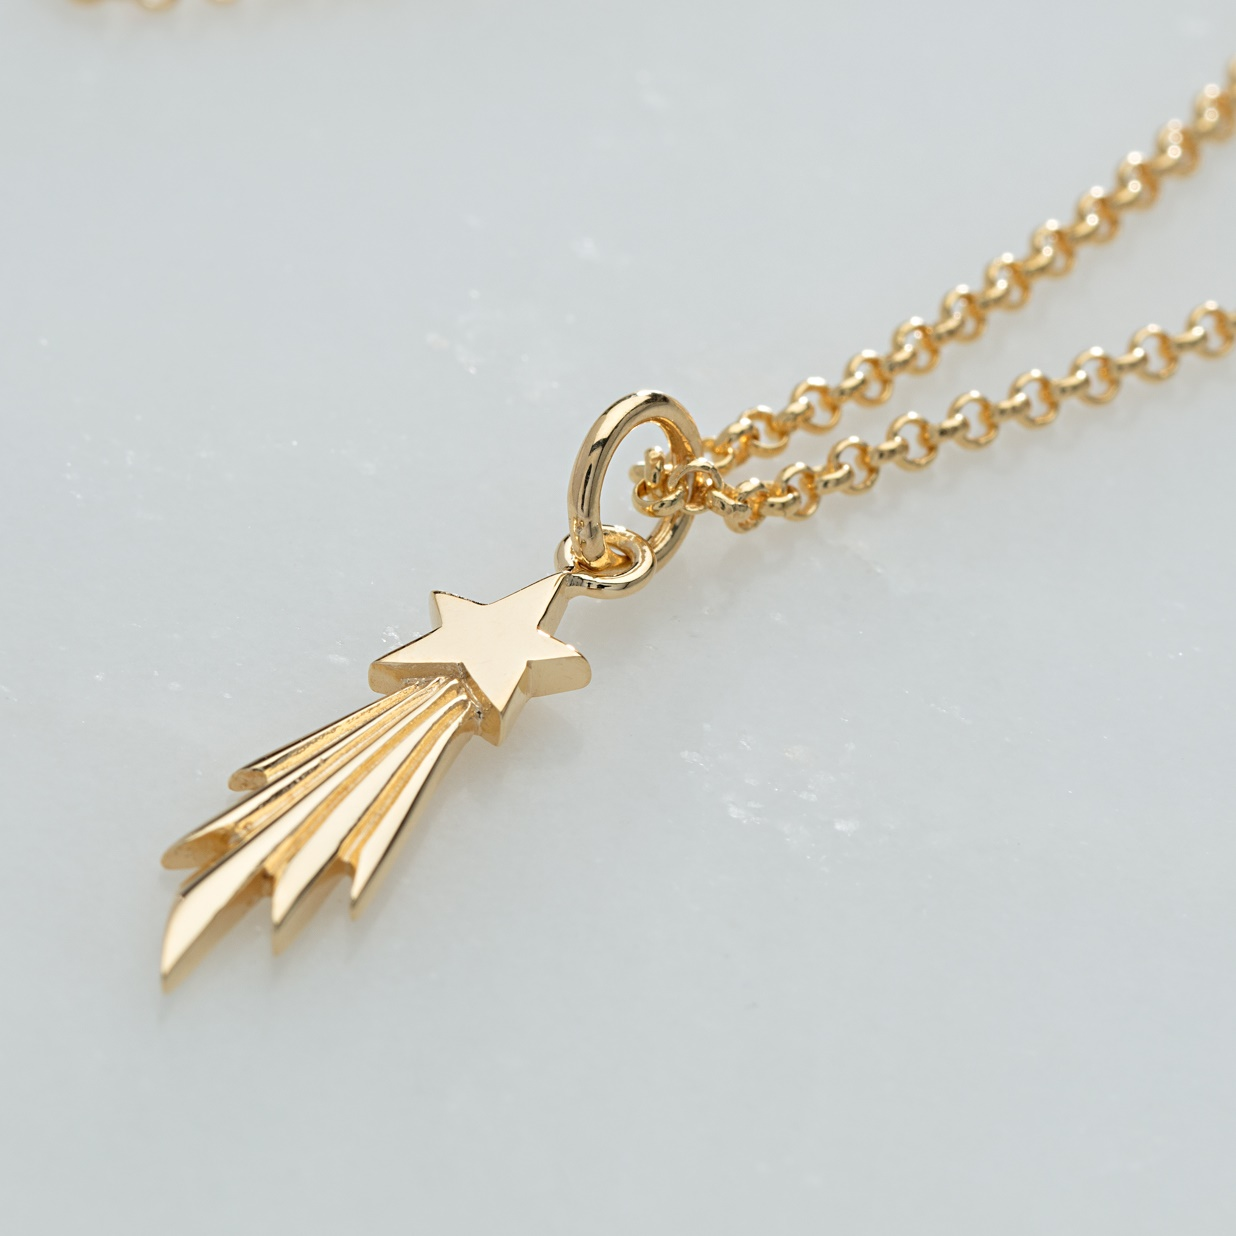 a9c9eb912 https://www.awin1.com/cread.php?awinmid=5630&awinaffid=!!!id!!!&p=https%3A%2F%2Fwww. lilycharmed.com%2Fjewellery%2Fpersonalised-gold-plated-shooting-star- ...